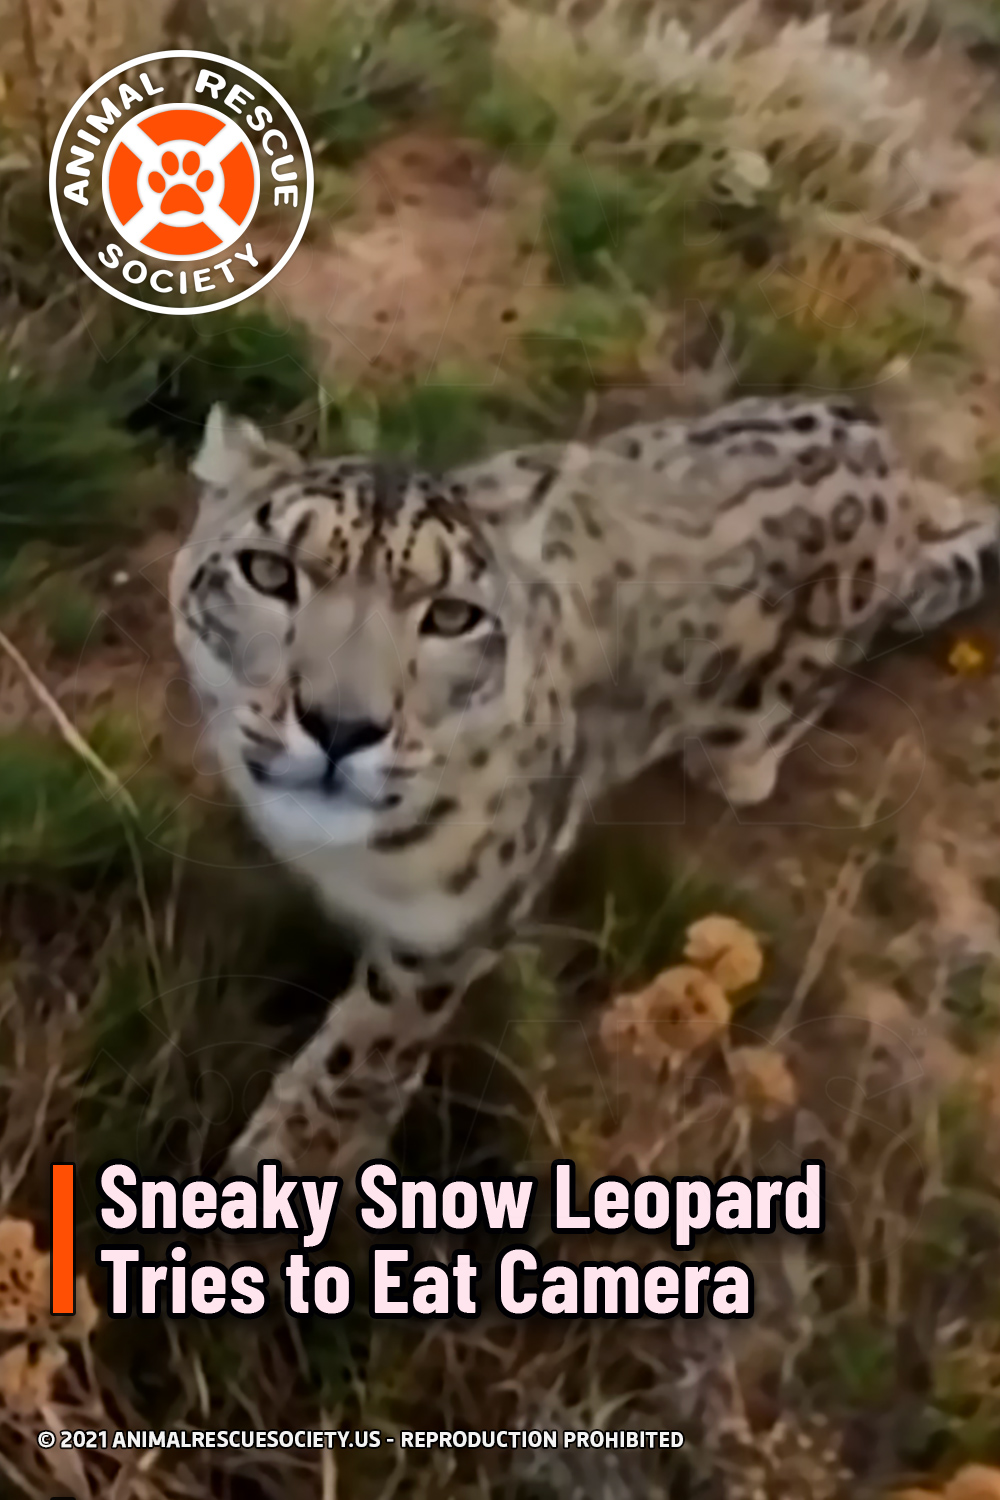 Sneaky Snow Leopard Tries to Eat Camera